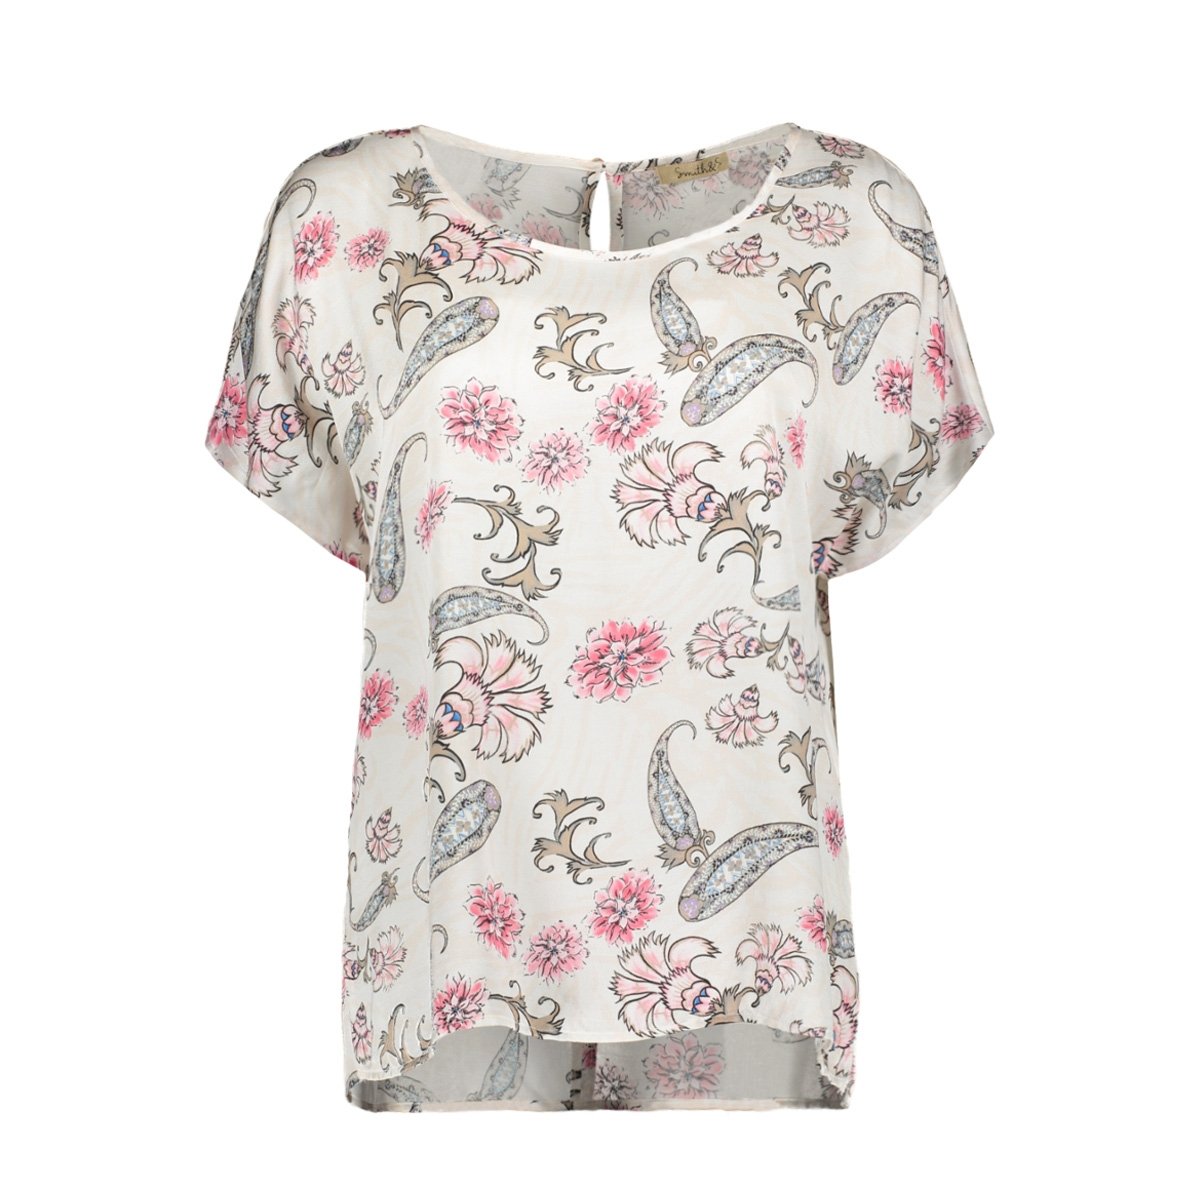 blouse allover print 0319 0533 smith & soul blouse 5594 blush colorful